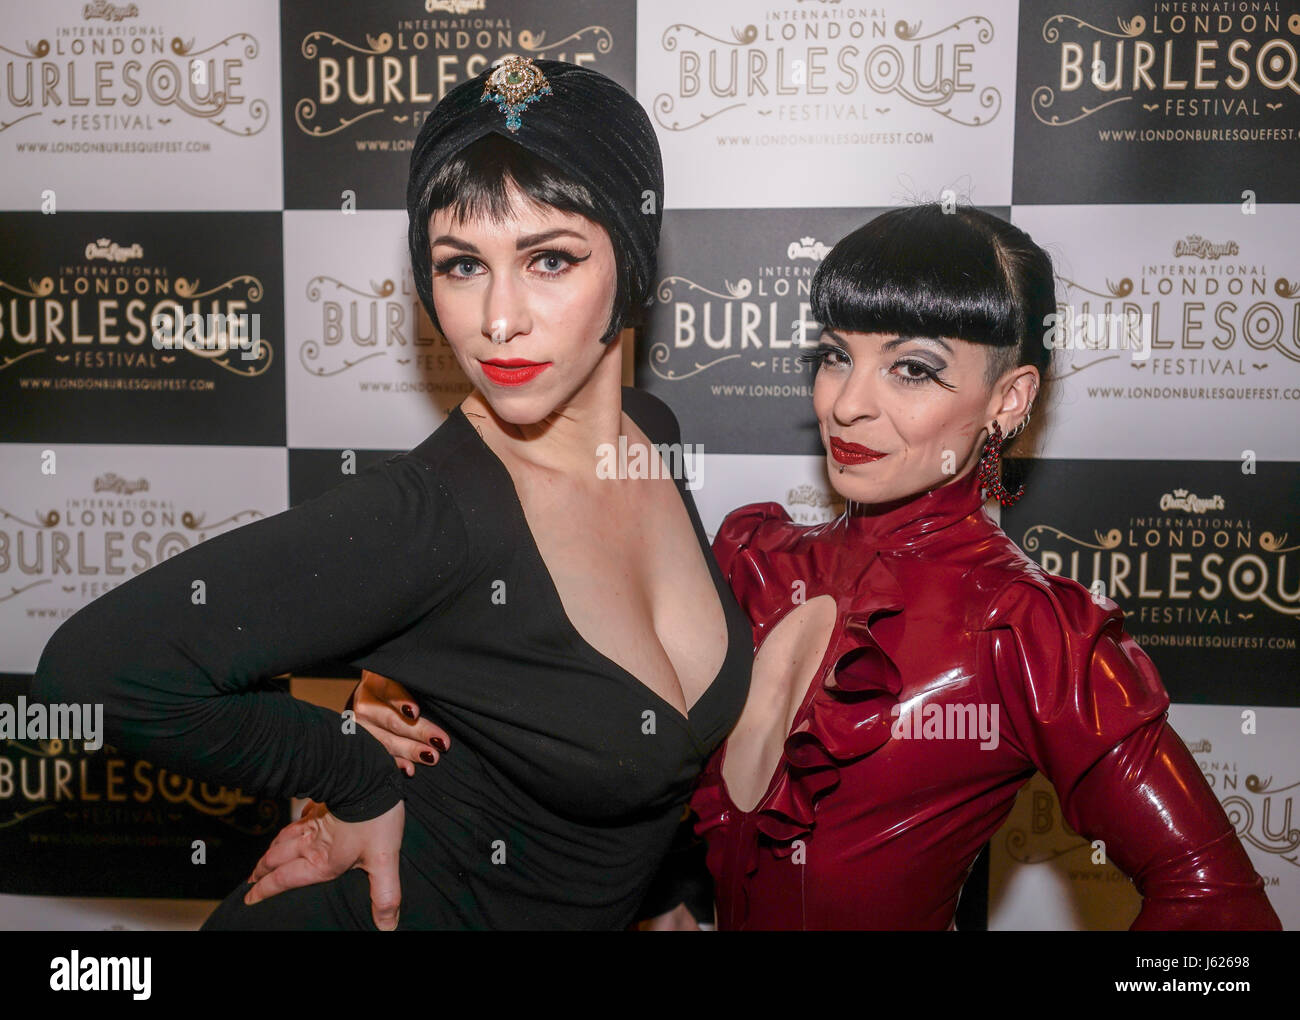 London, UK. 18th May, 2017. Prefomer Whisky Falls and Louise L'Amour at the London Burlesque Festival the VIP - Stock Image